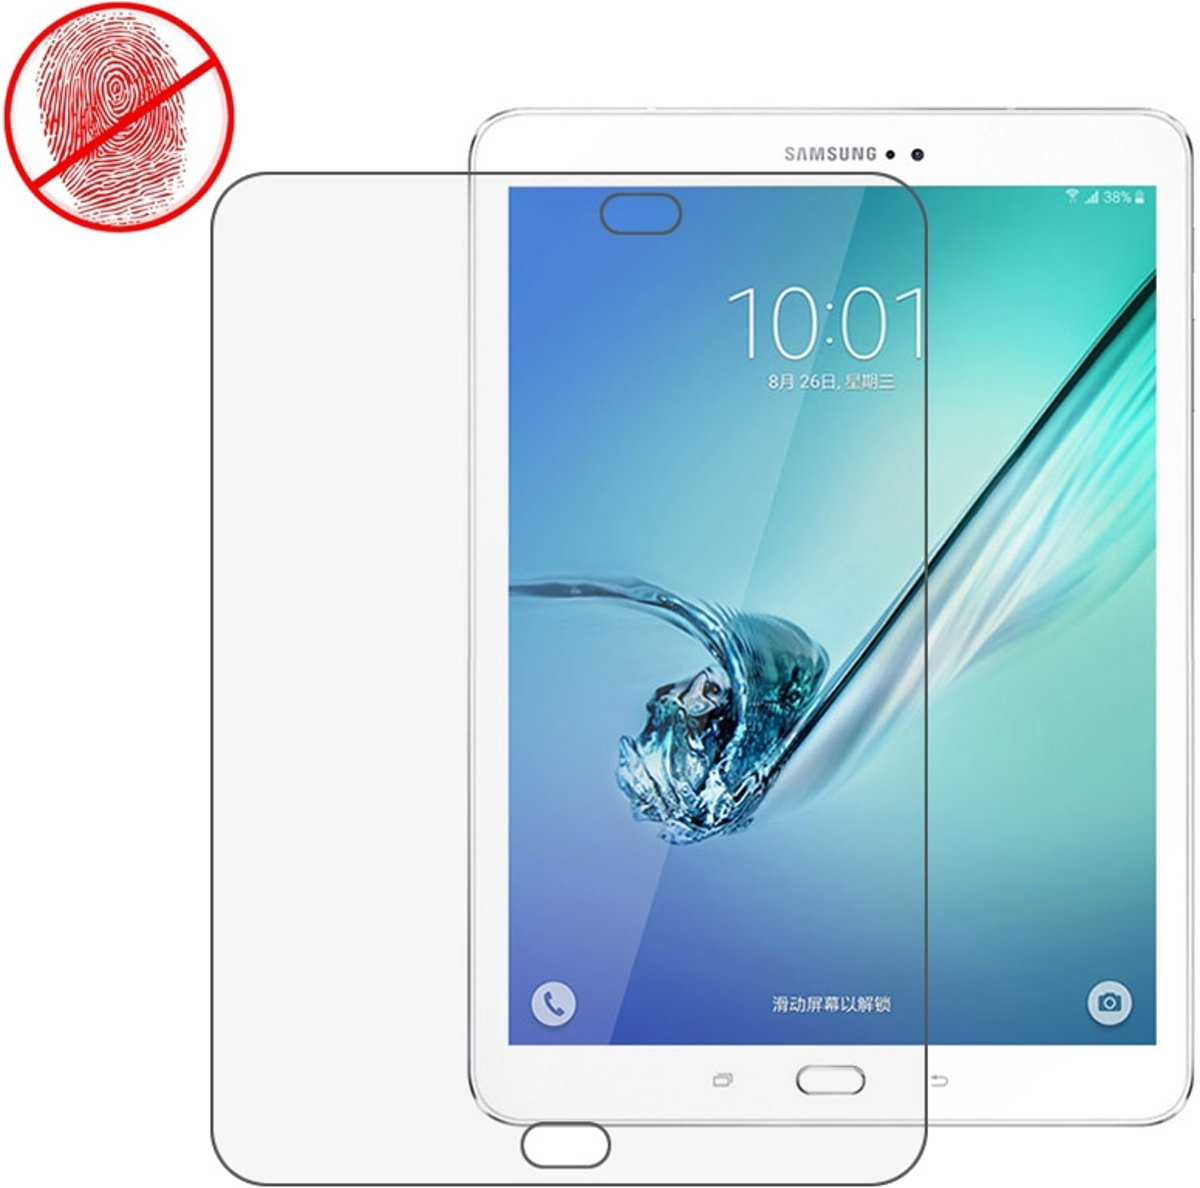 Samsung Galaxy Tab S2 9.7 - S2 9.7 VE ANTI-GLARE Screenprotector Bescherm-Folie